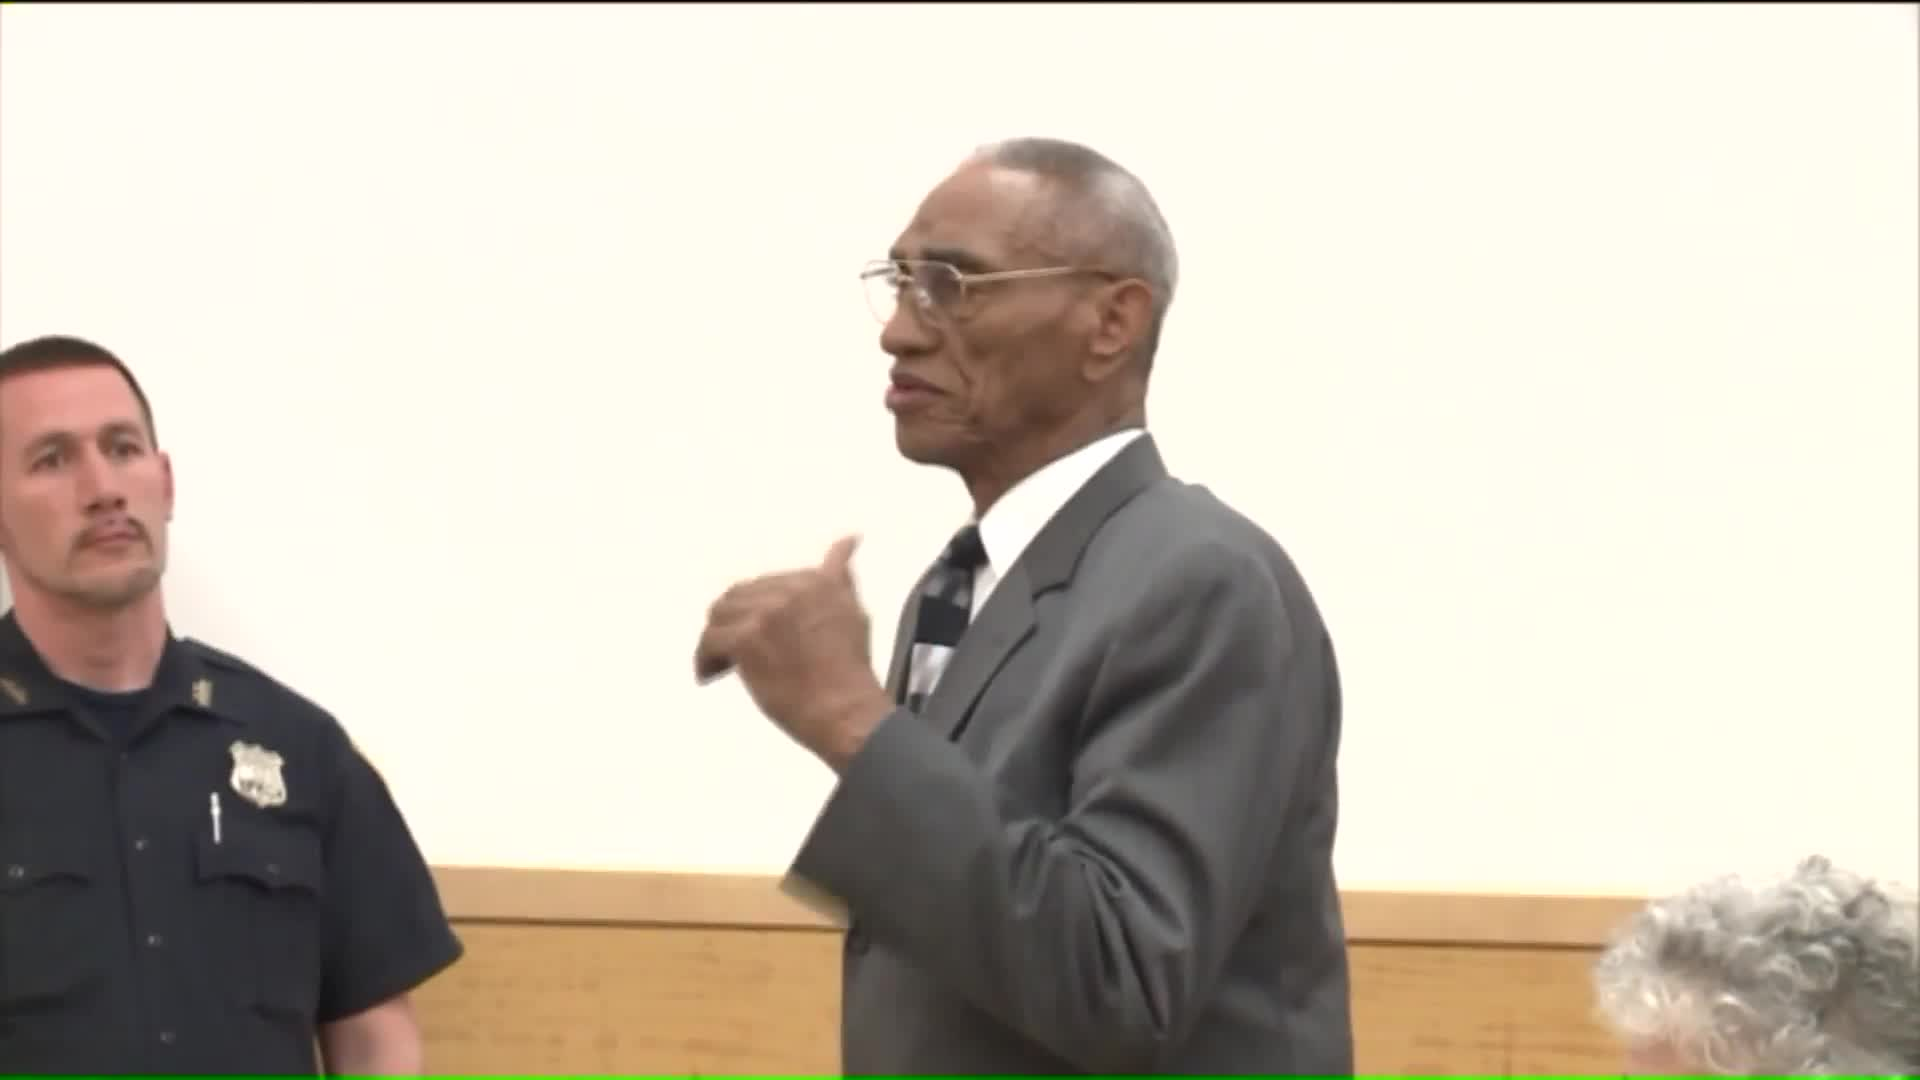 81-Year-Old Man Exonerated 52 Years After Murder Conviction